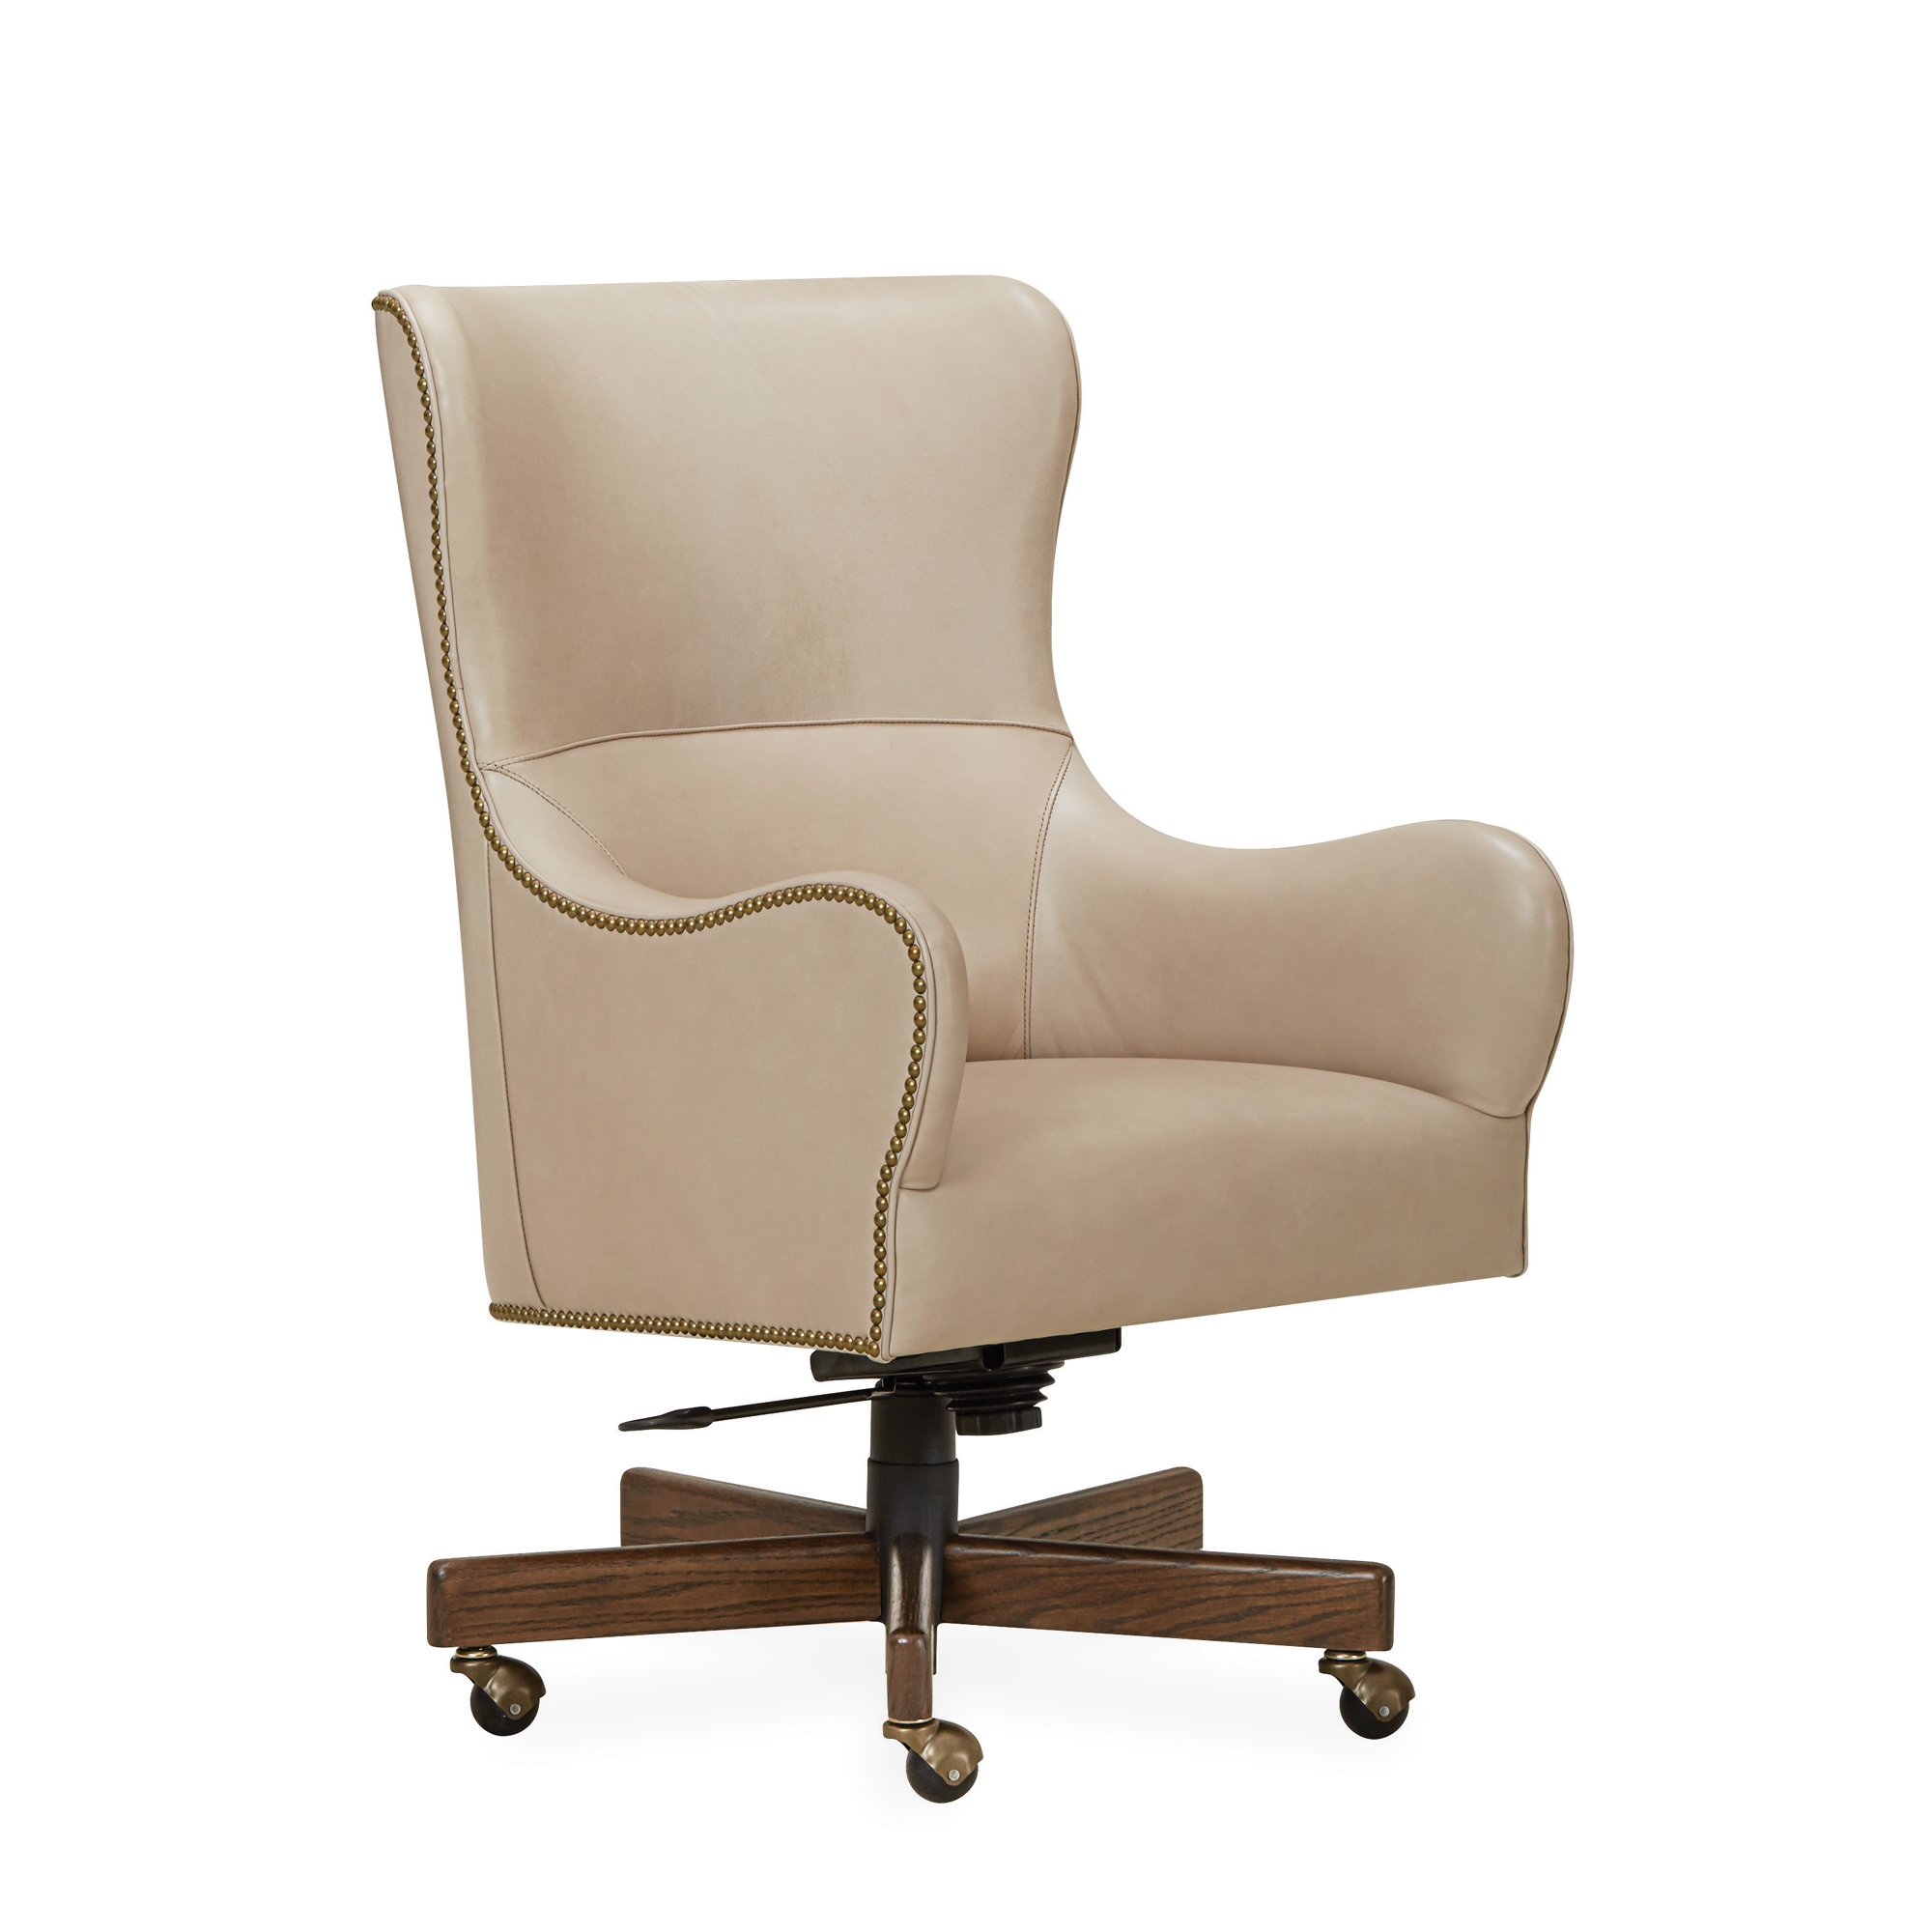 L5663_Workspace_Desk_Chair_Lee_Industries.jpg